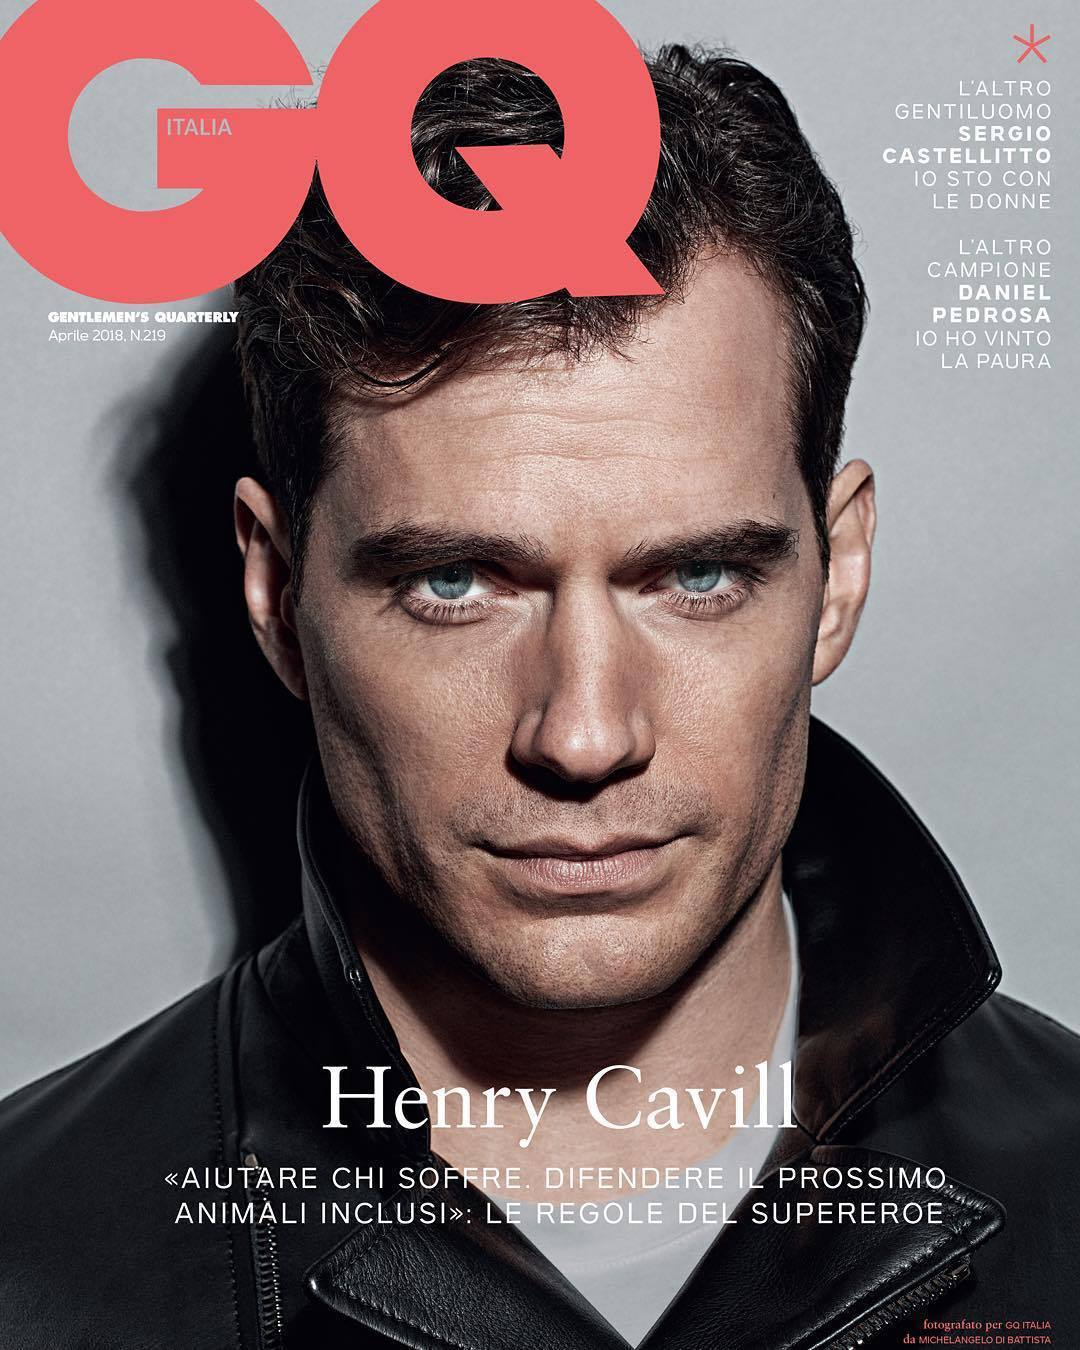 GQ Cover April 2018 x Henry Cavill | Michelangelo di Battista | Armani | GQ Italia | Nicolò Andreoni | Numerique Retouch Photo Retouching Studio